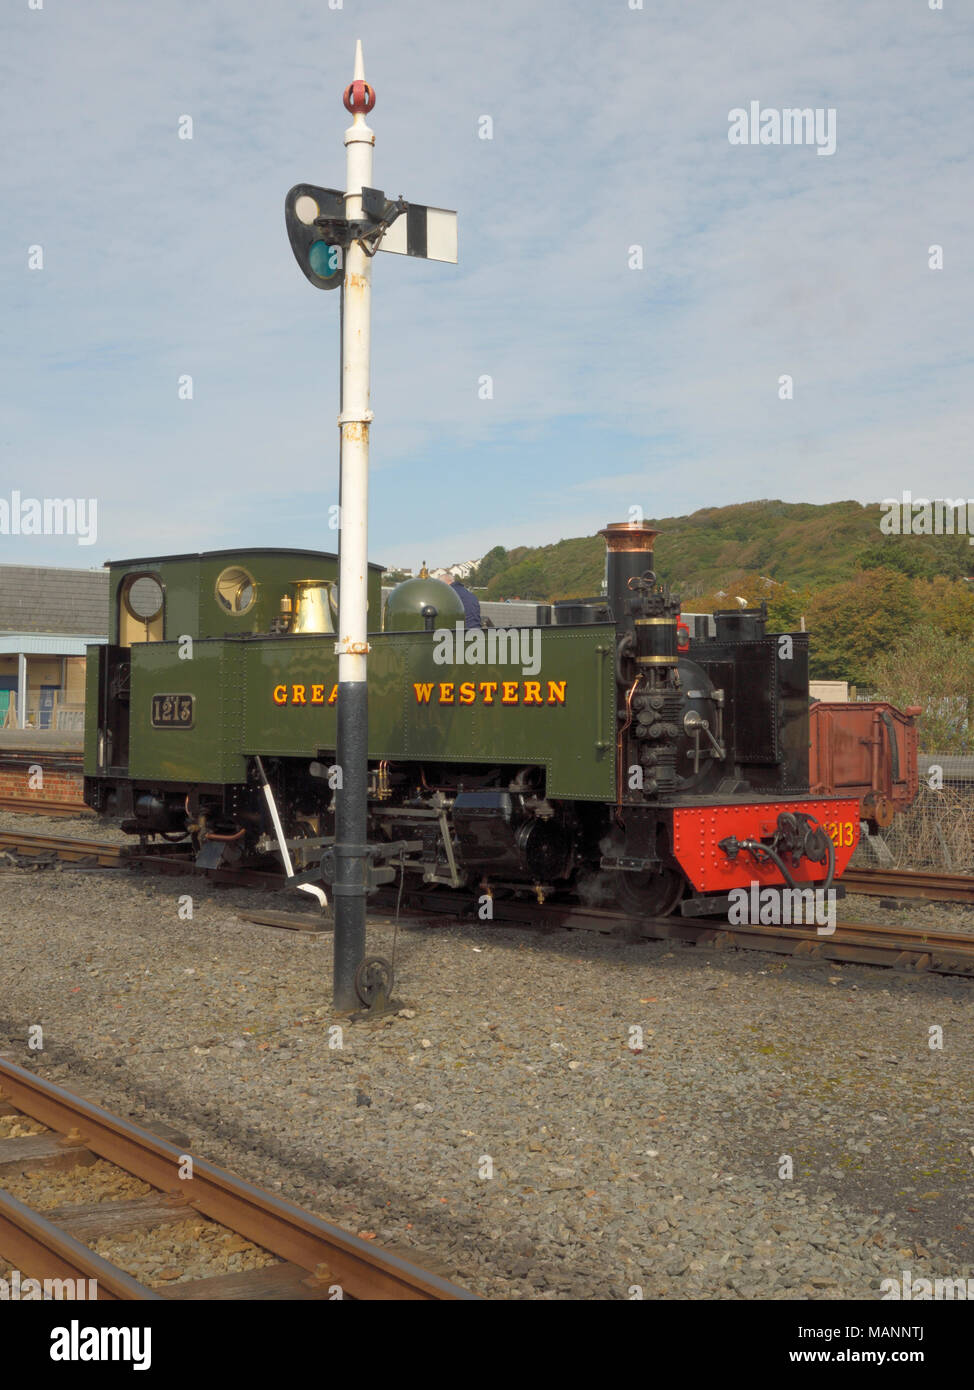 Locomotive: Great Western standing by a signal in Aberystwyth Station - Stock Image